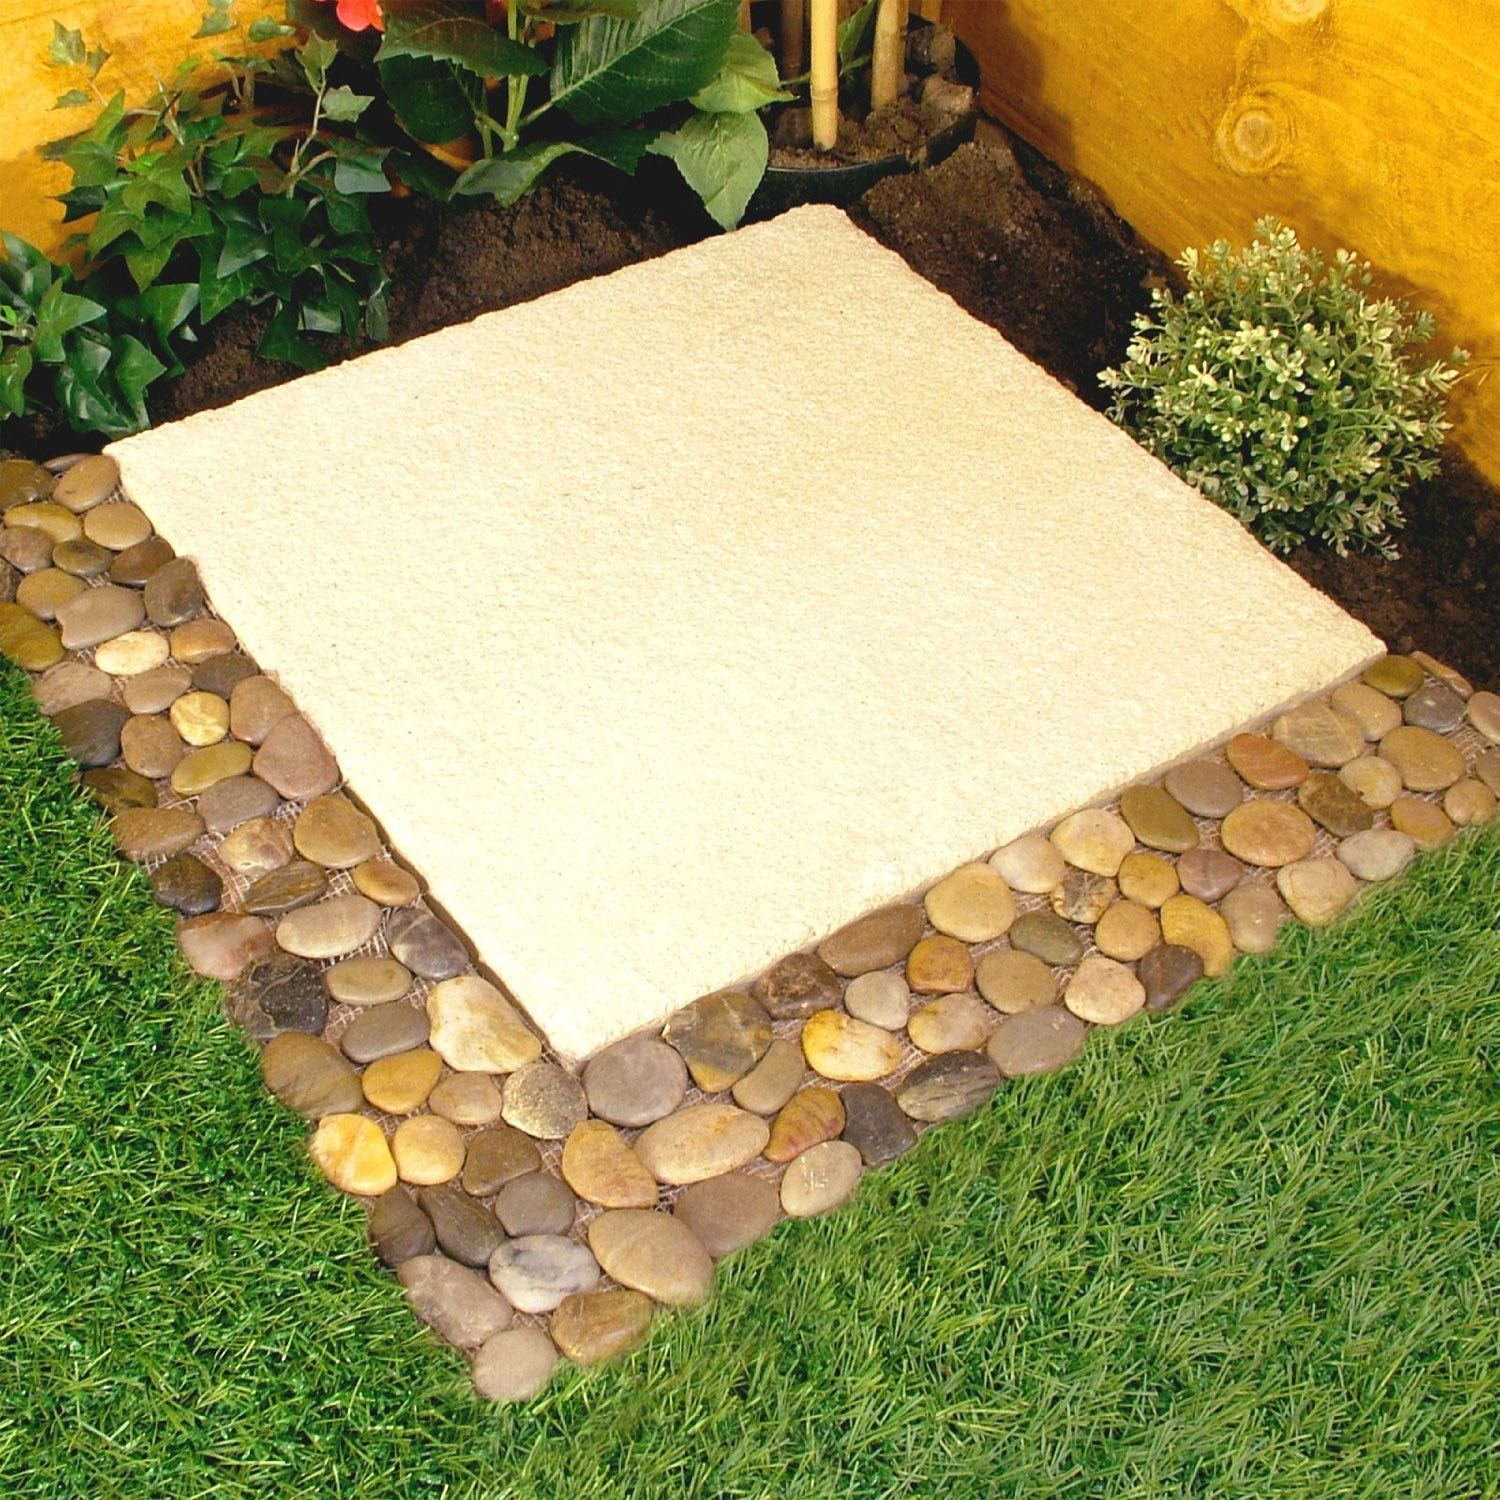 4 X Parkland Pebble Border Stone Garden Lawn Edging Strips Wall